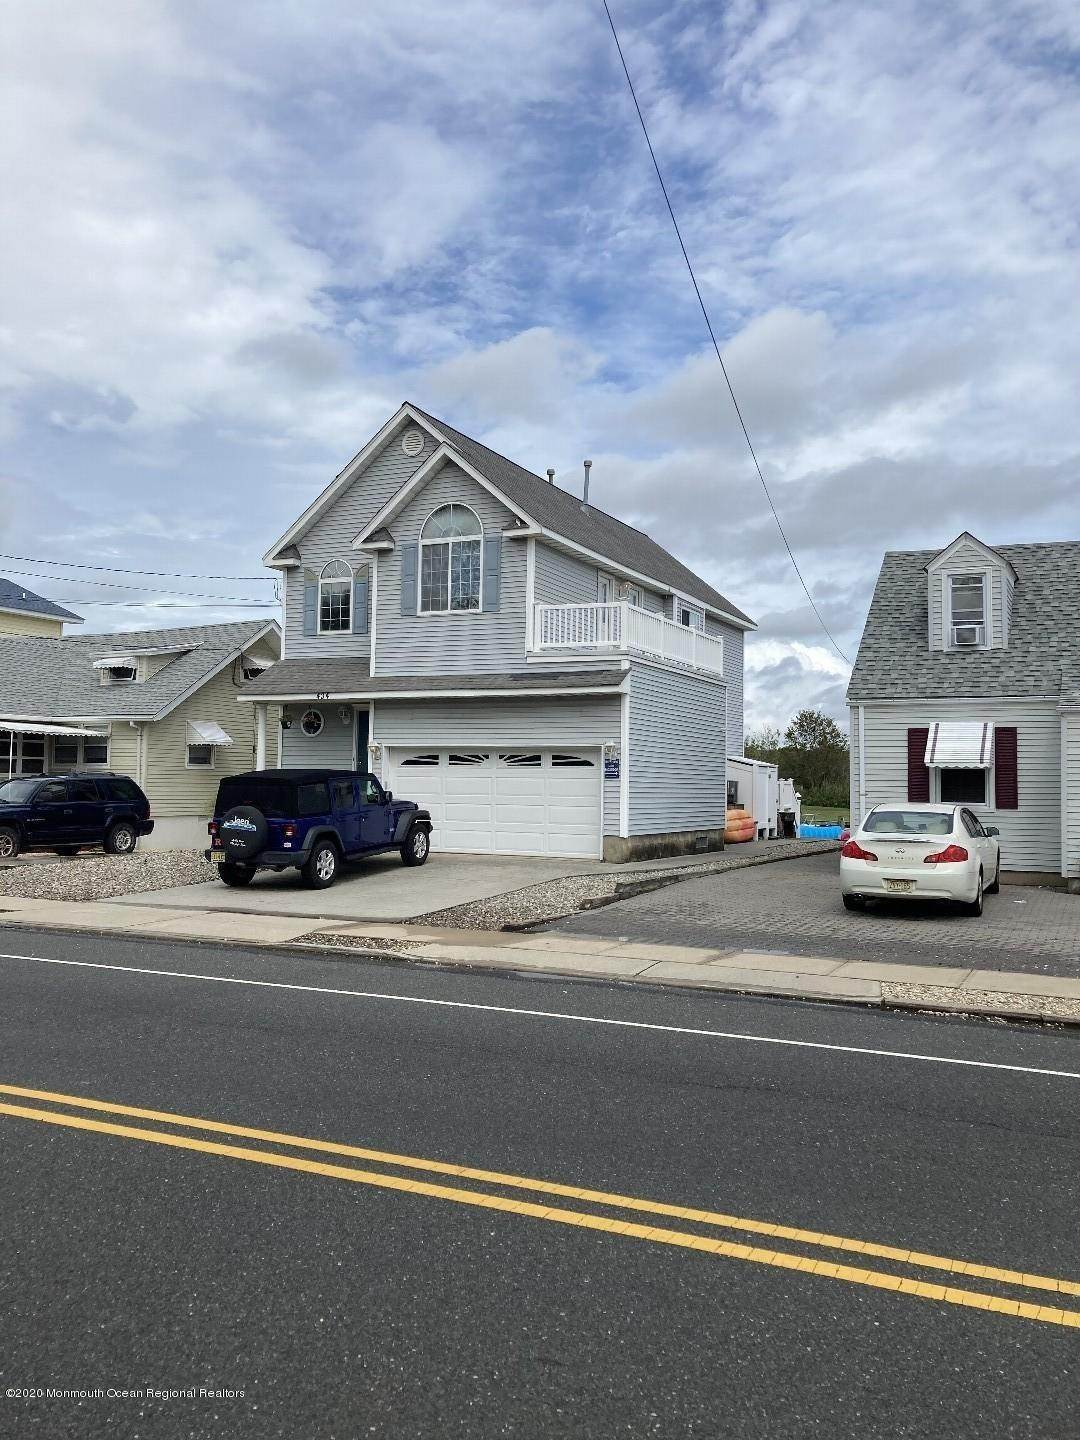 4. Single Family Homes for Sale at 434 Brielle Road Manasquan, New Jersey 08736 United States